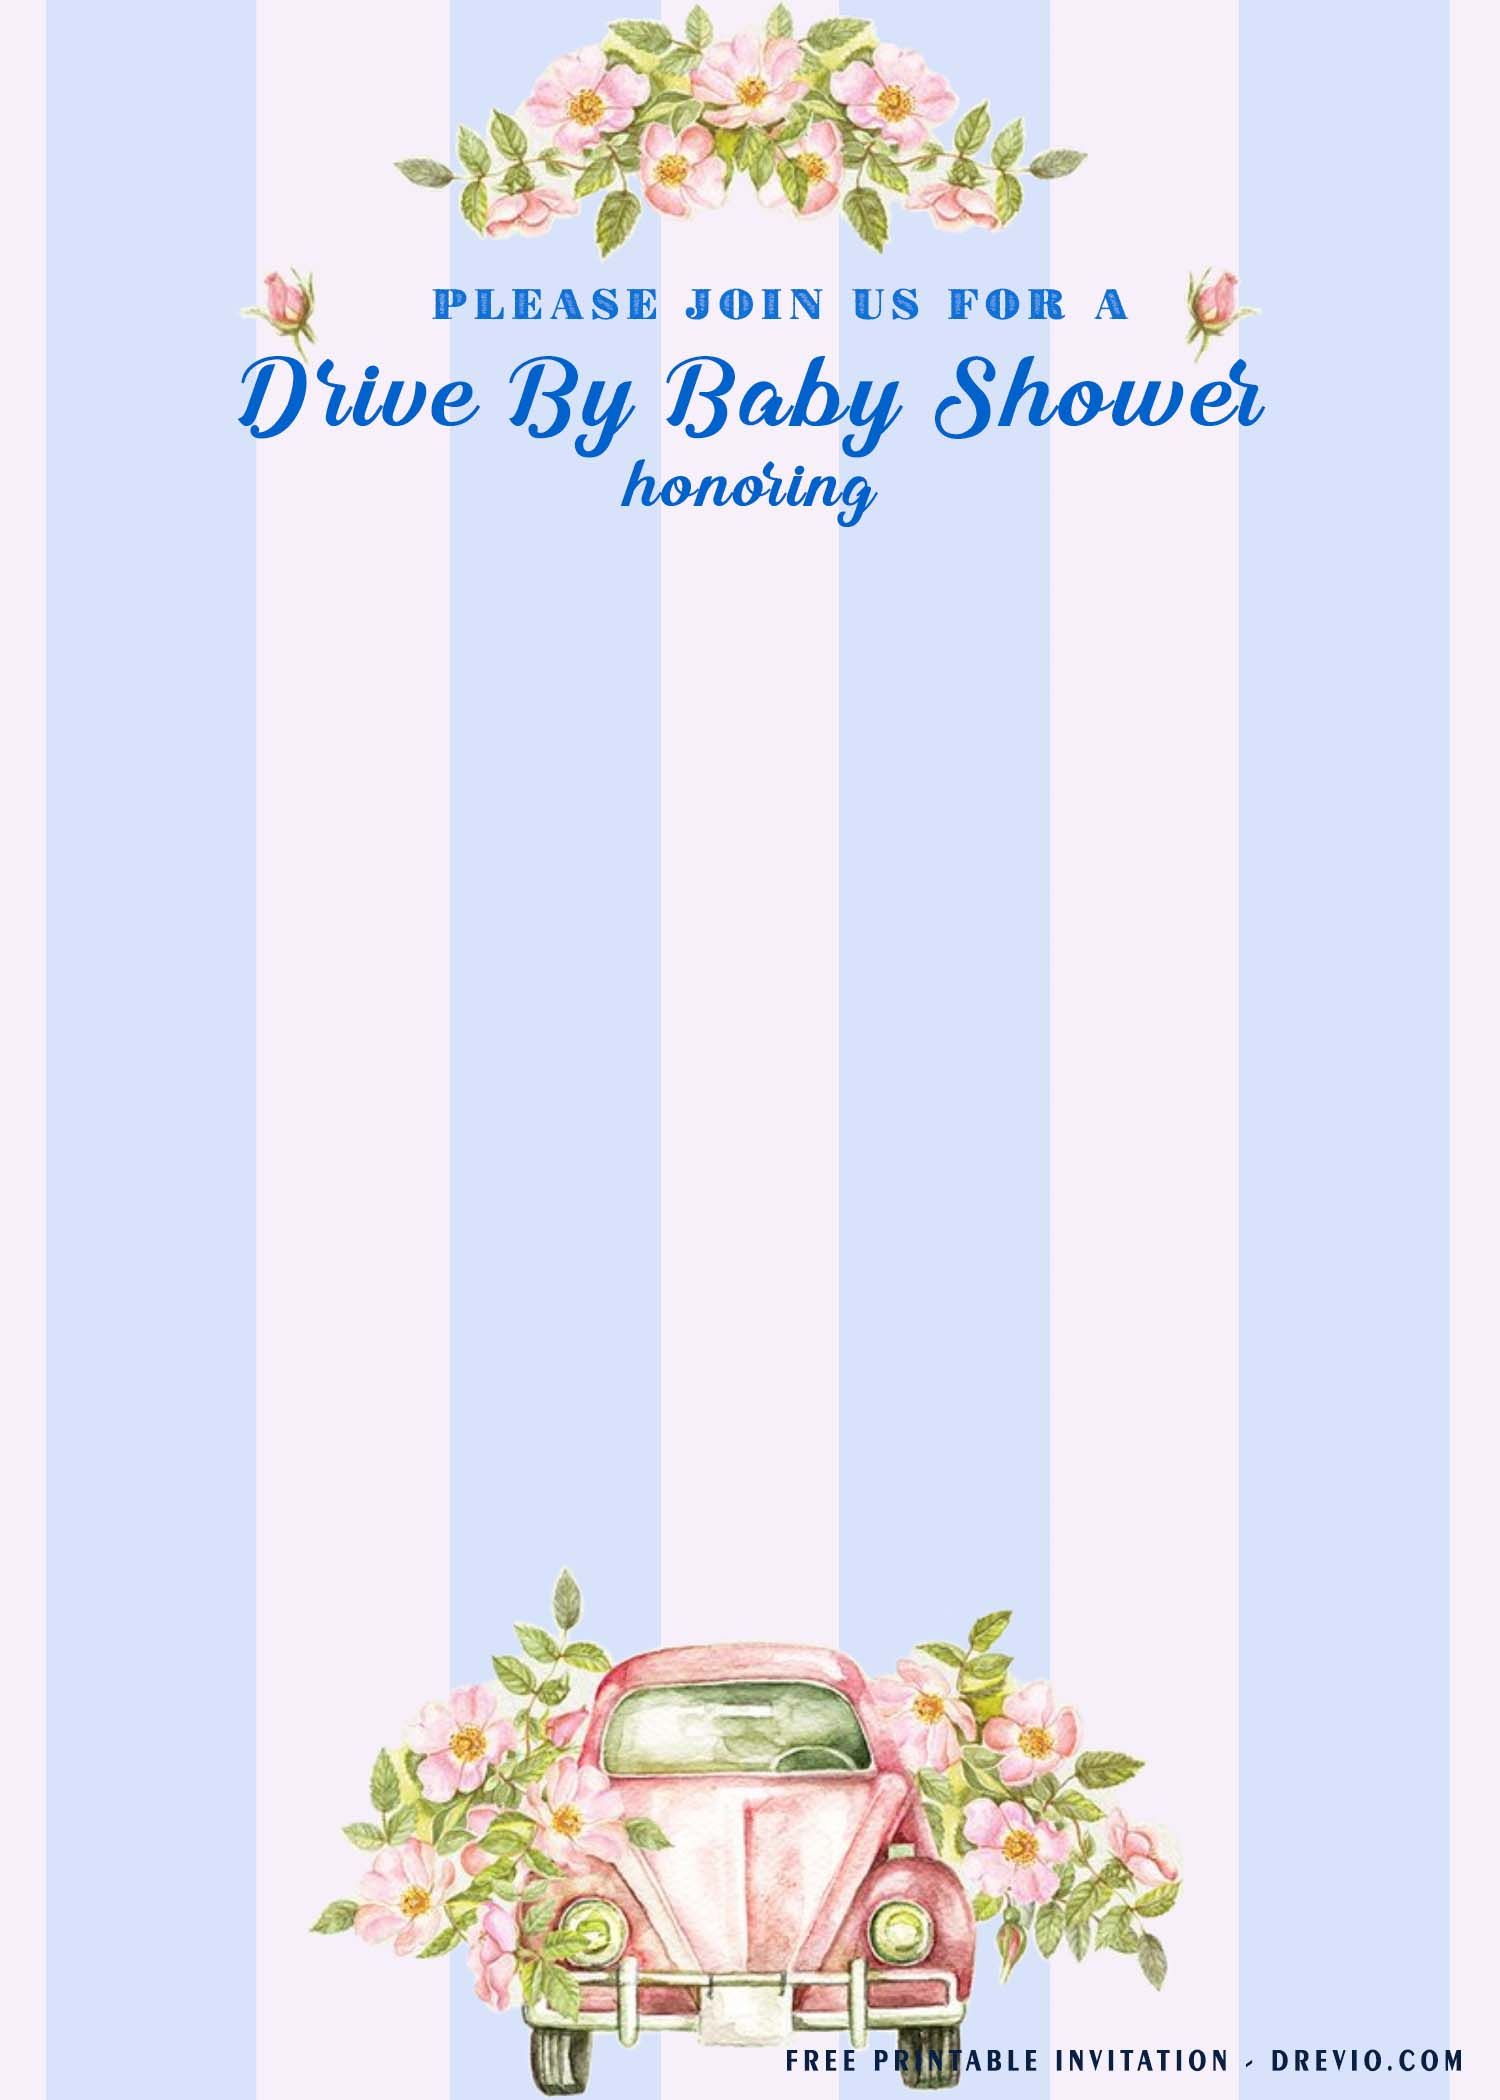 Free Printable Retro Drive By Baby Shower Invitation Free Baby Shower Invitations Shower Invitations Free Printable Baby Shower Invitations